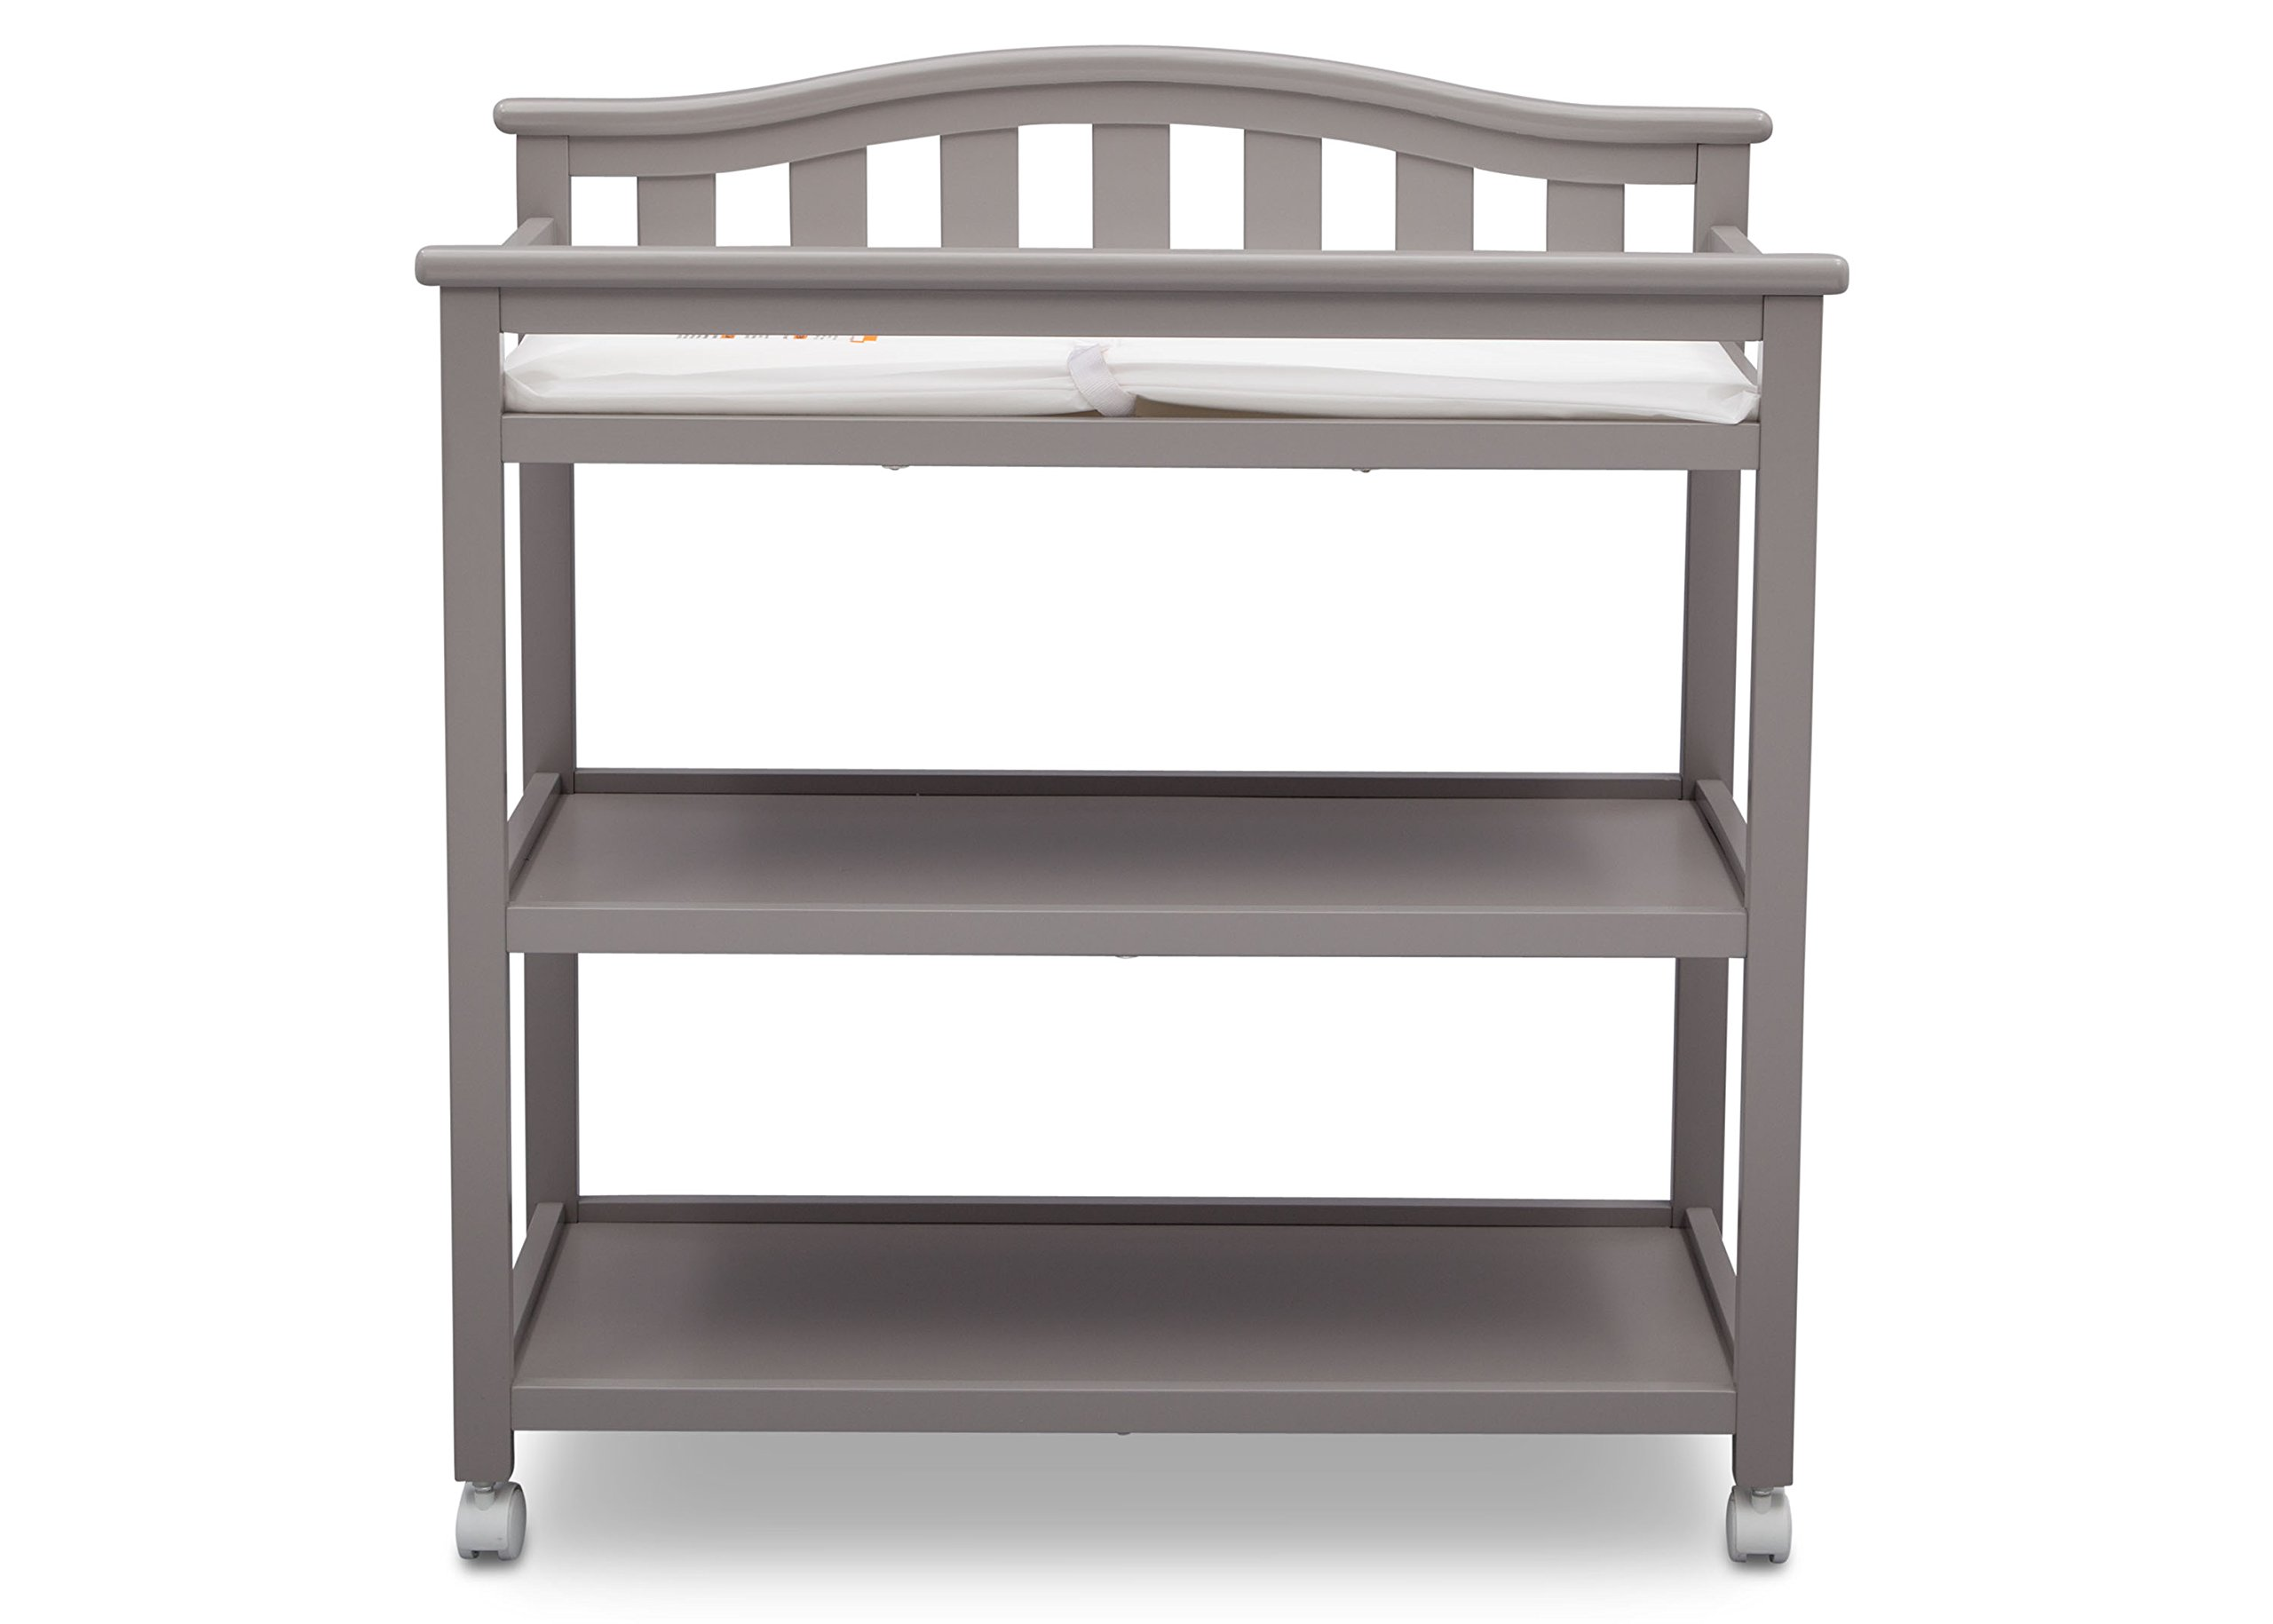 Delta Children Bell Top Changing Table with Casters, Grey by Delta Children (Image #6)